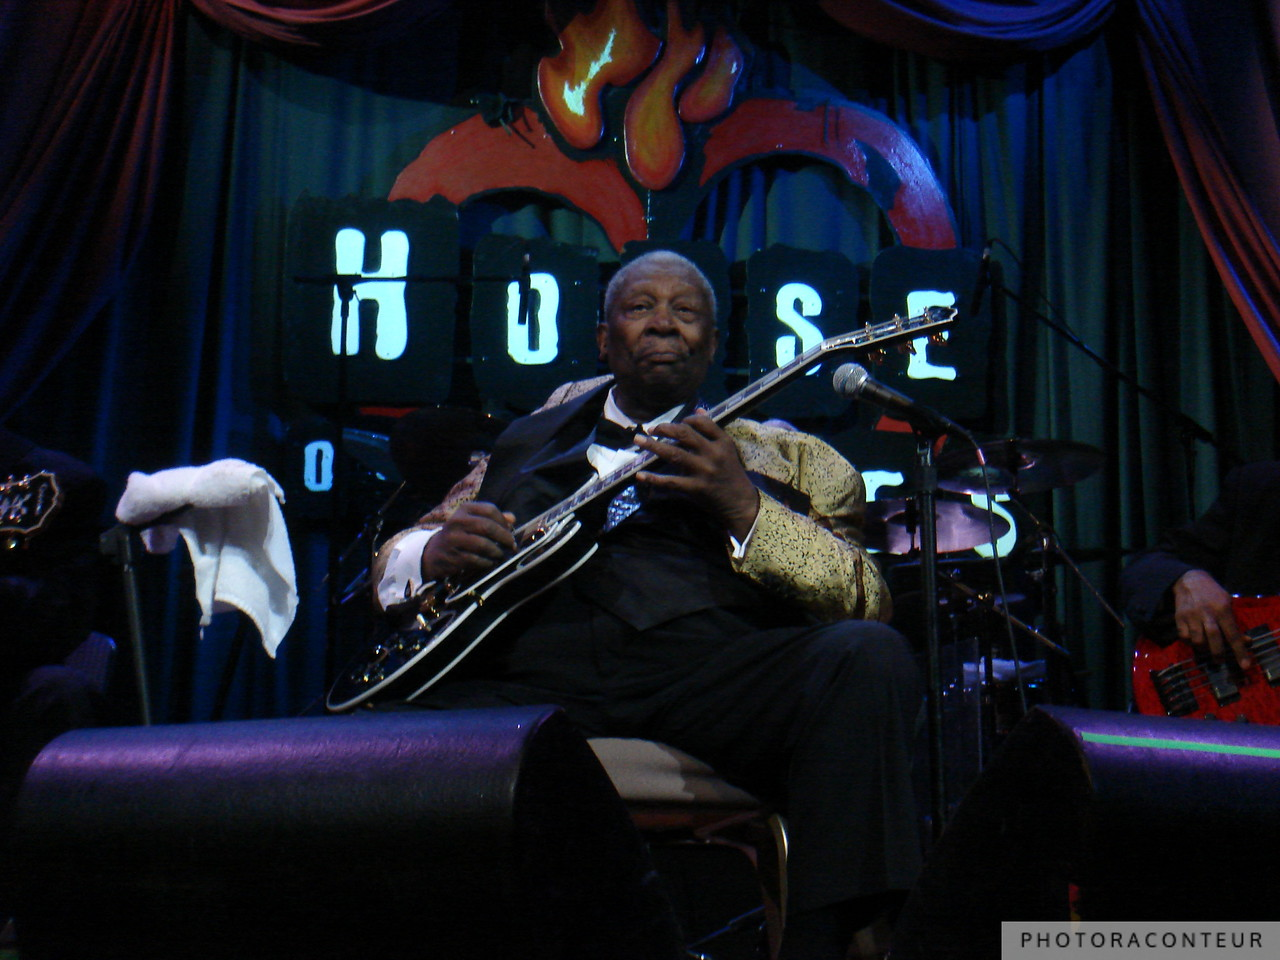 B.B. King performing at the House of Blues in Las Vegas, May 2009